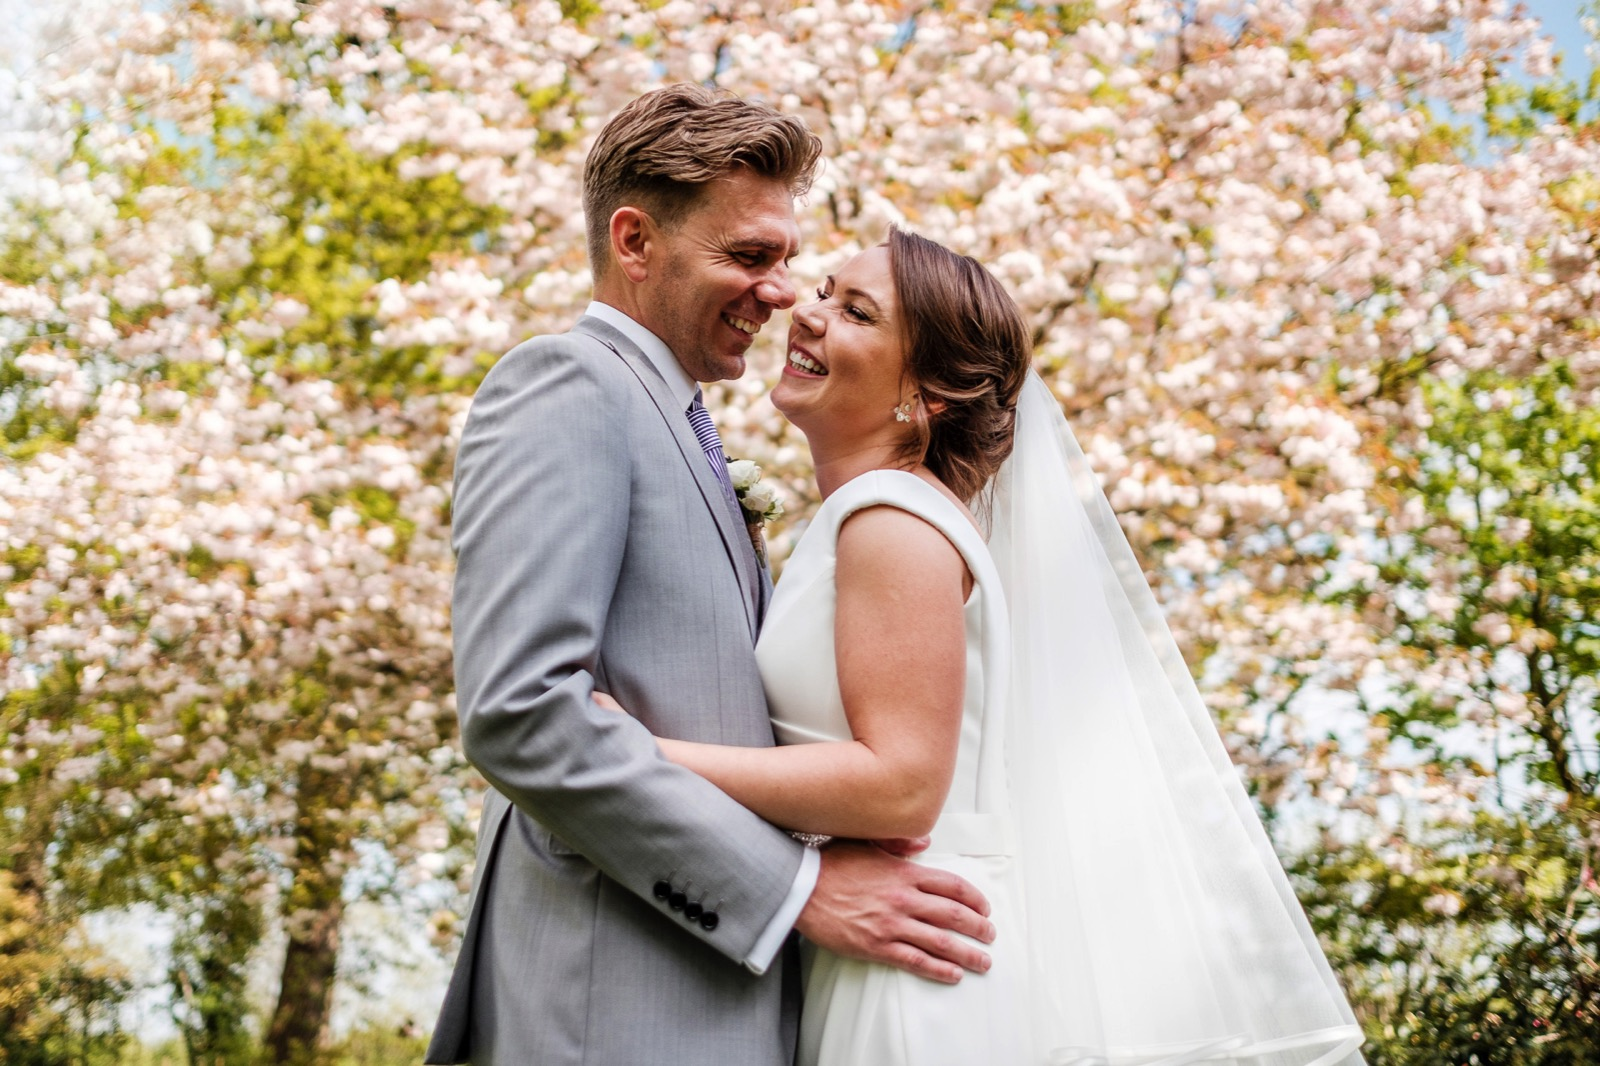 Bride & Groom laughing and embracing in front of trees covered in stunning white blossoms